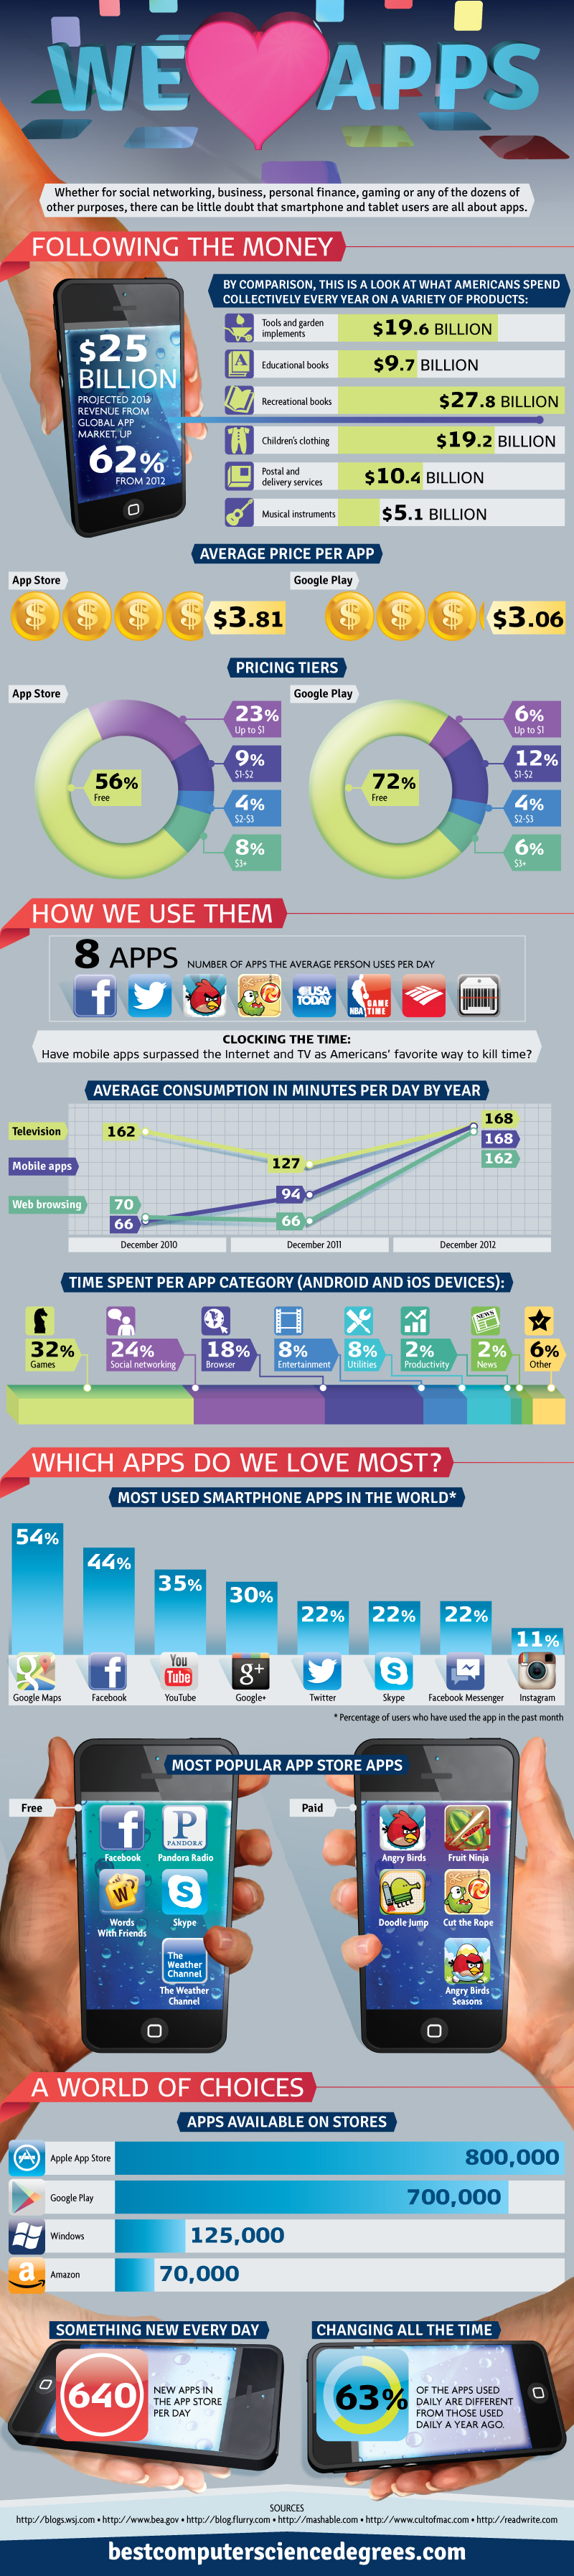 We Love Apps